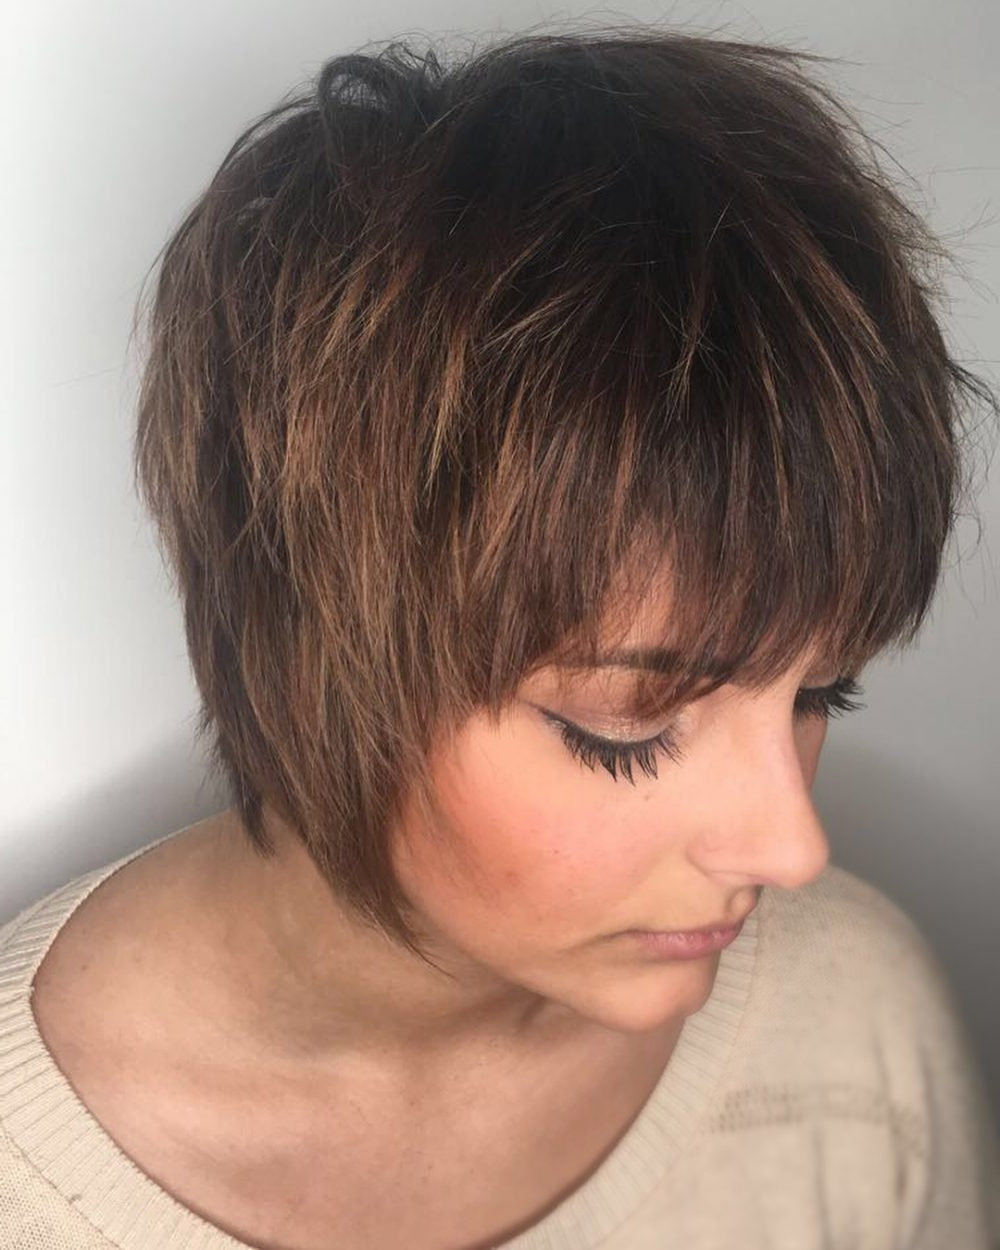 Top 25 Short Shag Haircuts Of 2019 With Regard To Razored Shaggy Bob Hairstyles With Bangs (View 18 of 20)